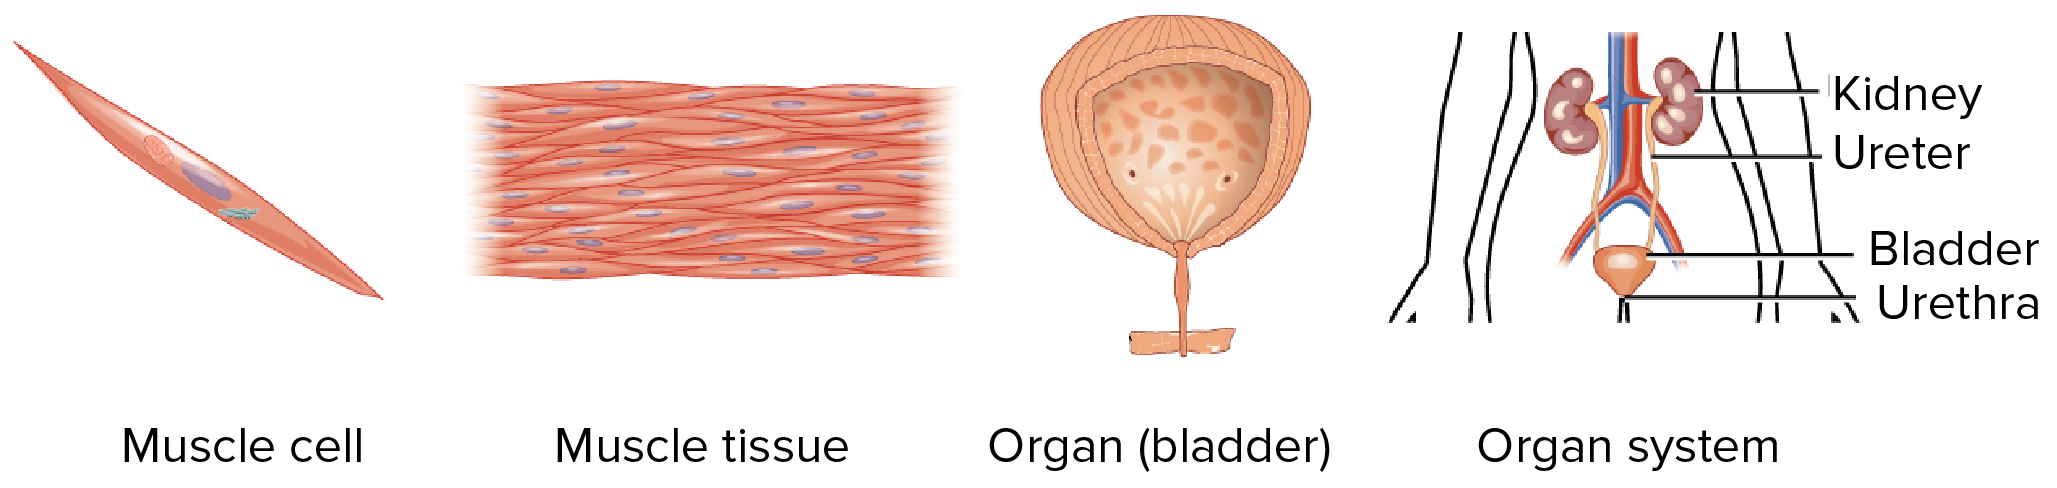 Organs clipart system biology Forming muscle cells Academy and